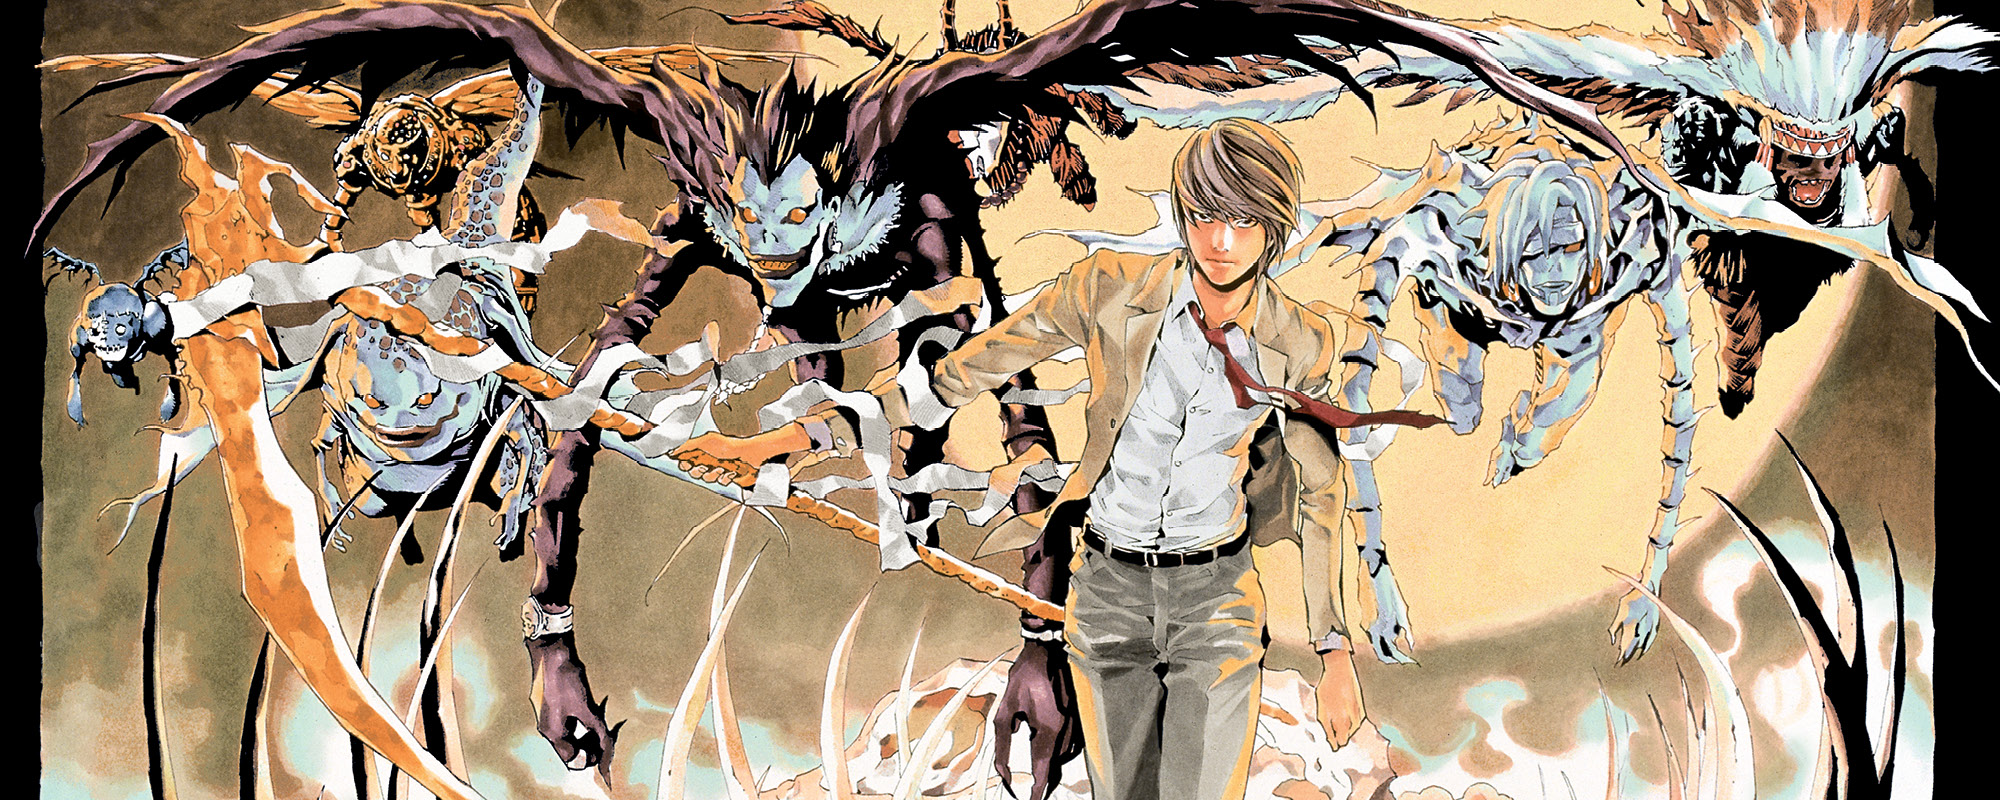 Death Note (manga) – Anime Recommendations